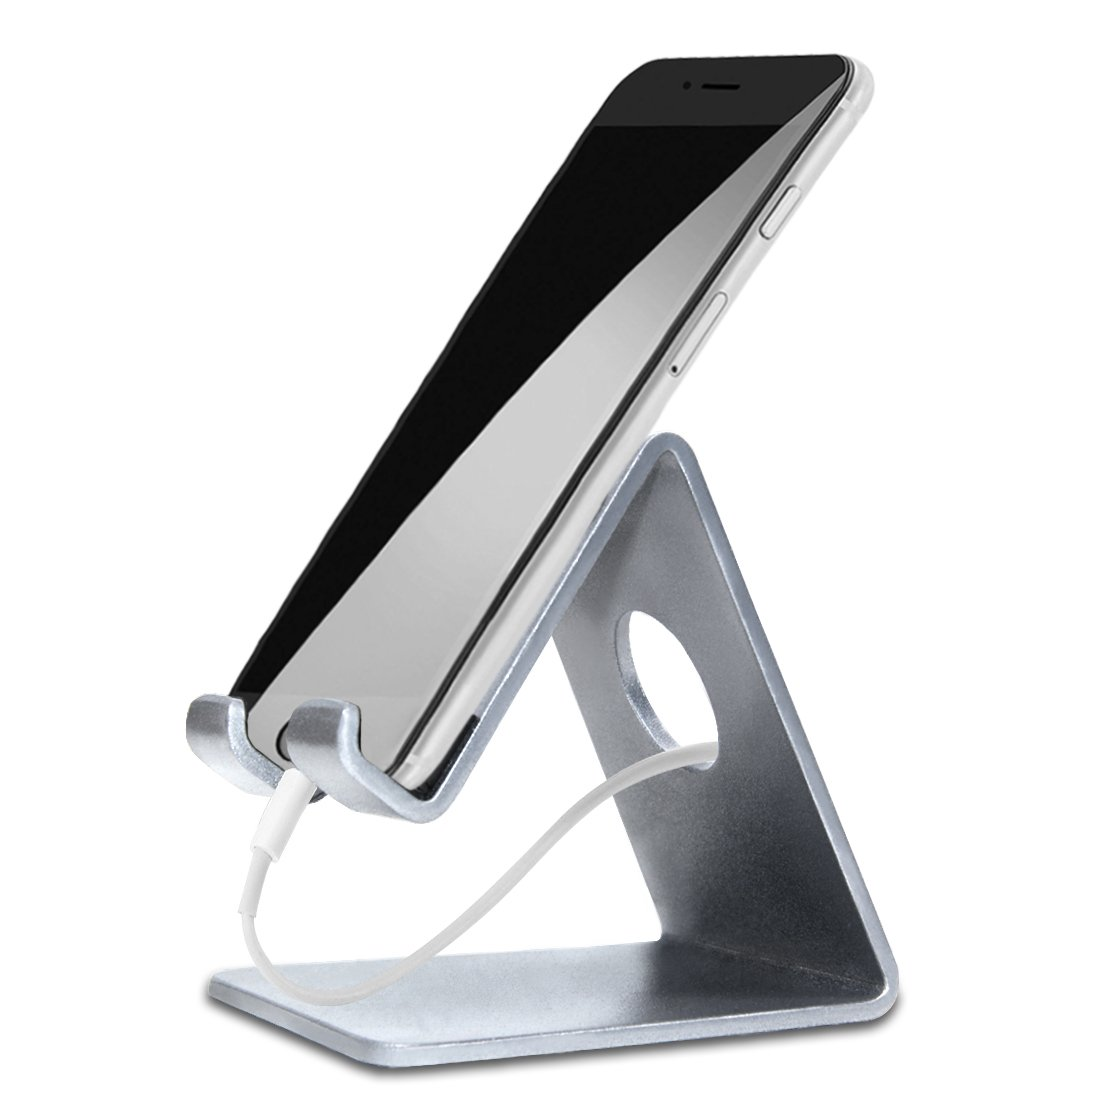 Mobile Phone Accessories Cellphones & Telecommunications Symbol Of The Brand Universal Foldable Portable Desk Stand Mobile Phone Tablet Holder Adjustable Au